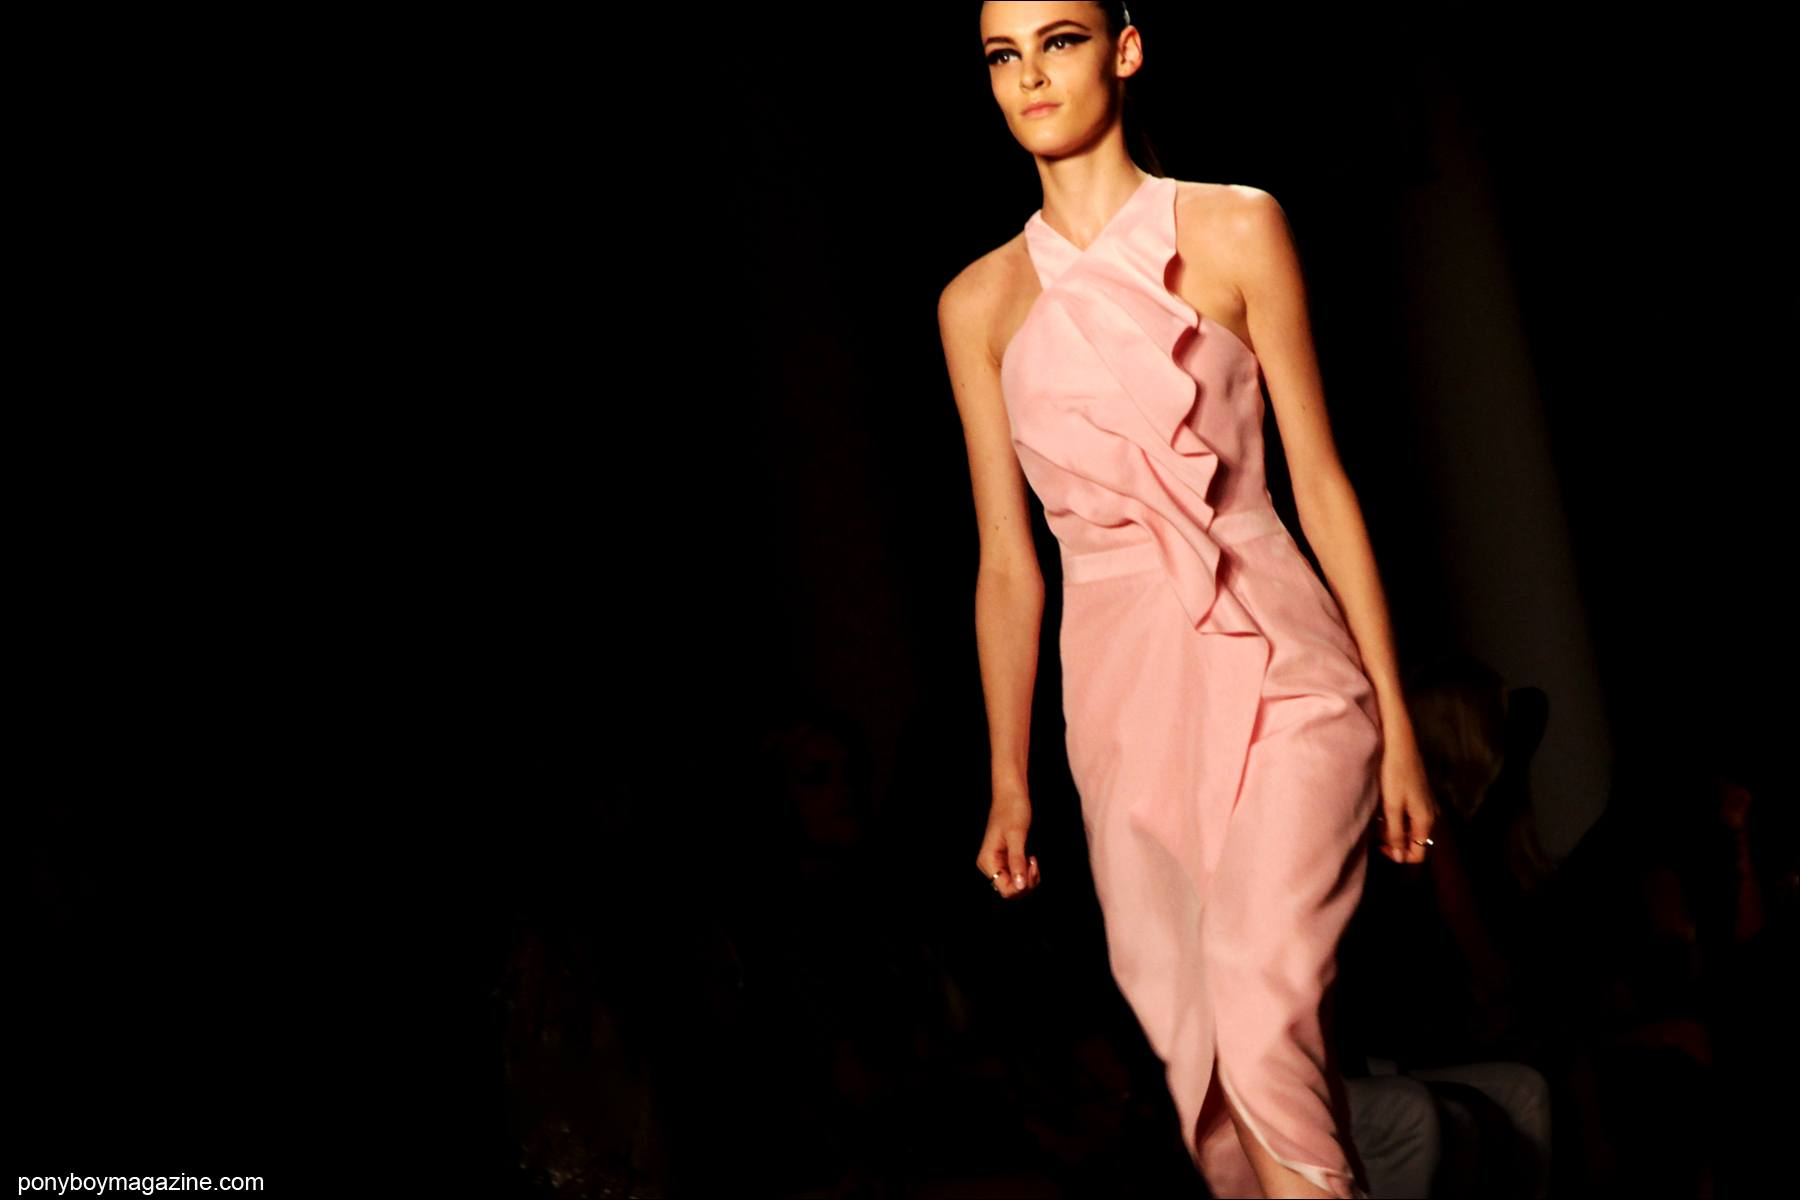 A model wears a pink dress on the catwalk for Cushnie et Ochs S/S15. Photographed for Ponyboy Magazine by Alexander Thompson at Milk Studios.